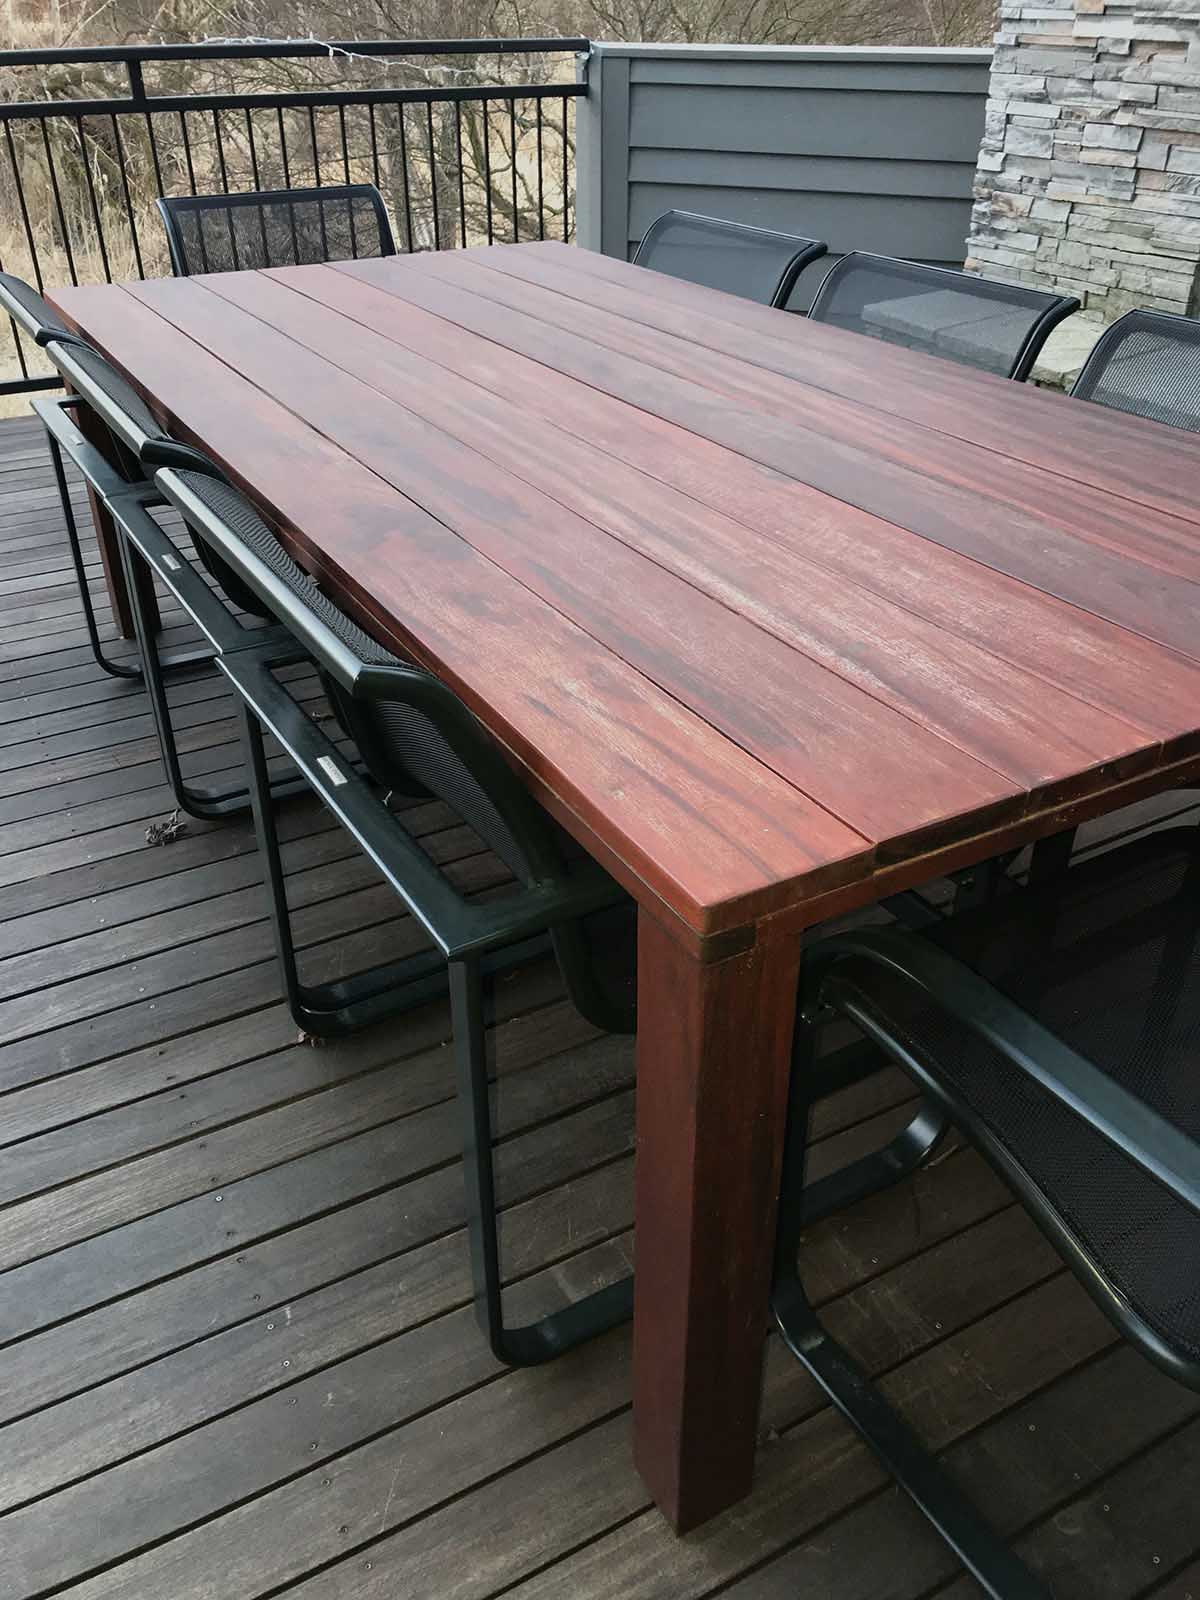 ExoShield Treated TigerWood Table shown during Winter after 9 months